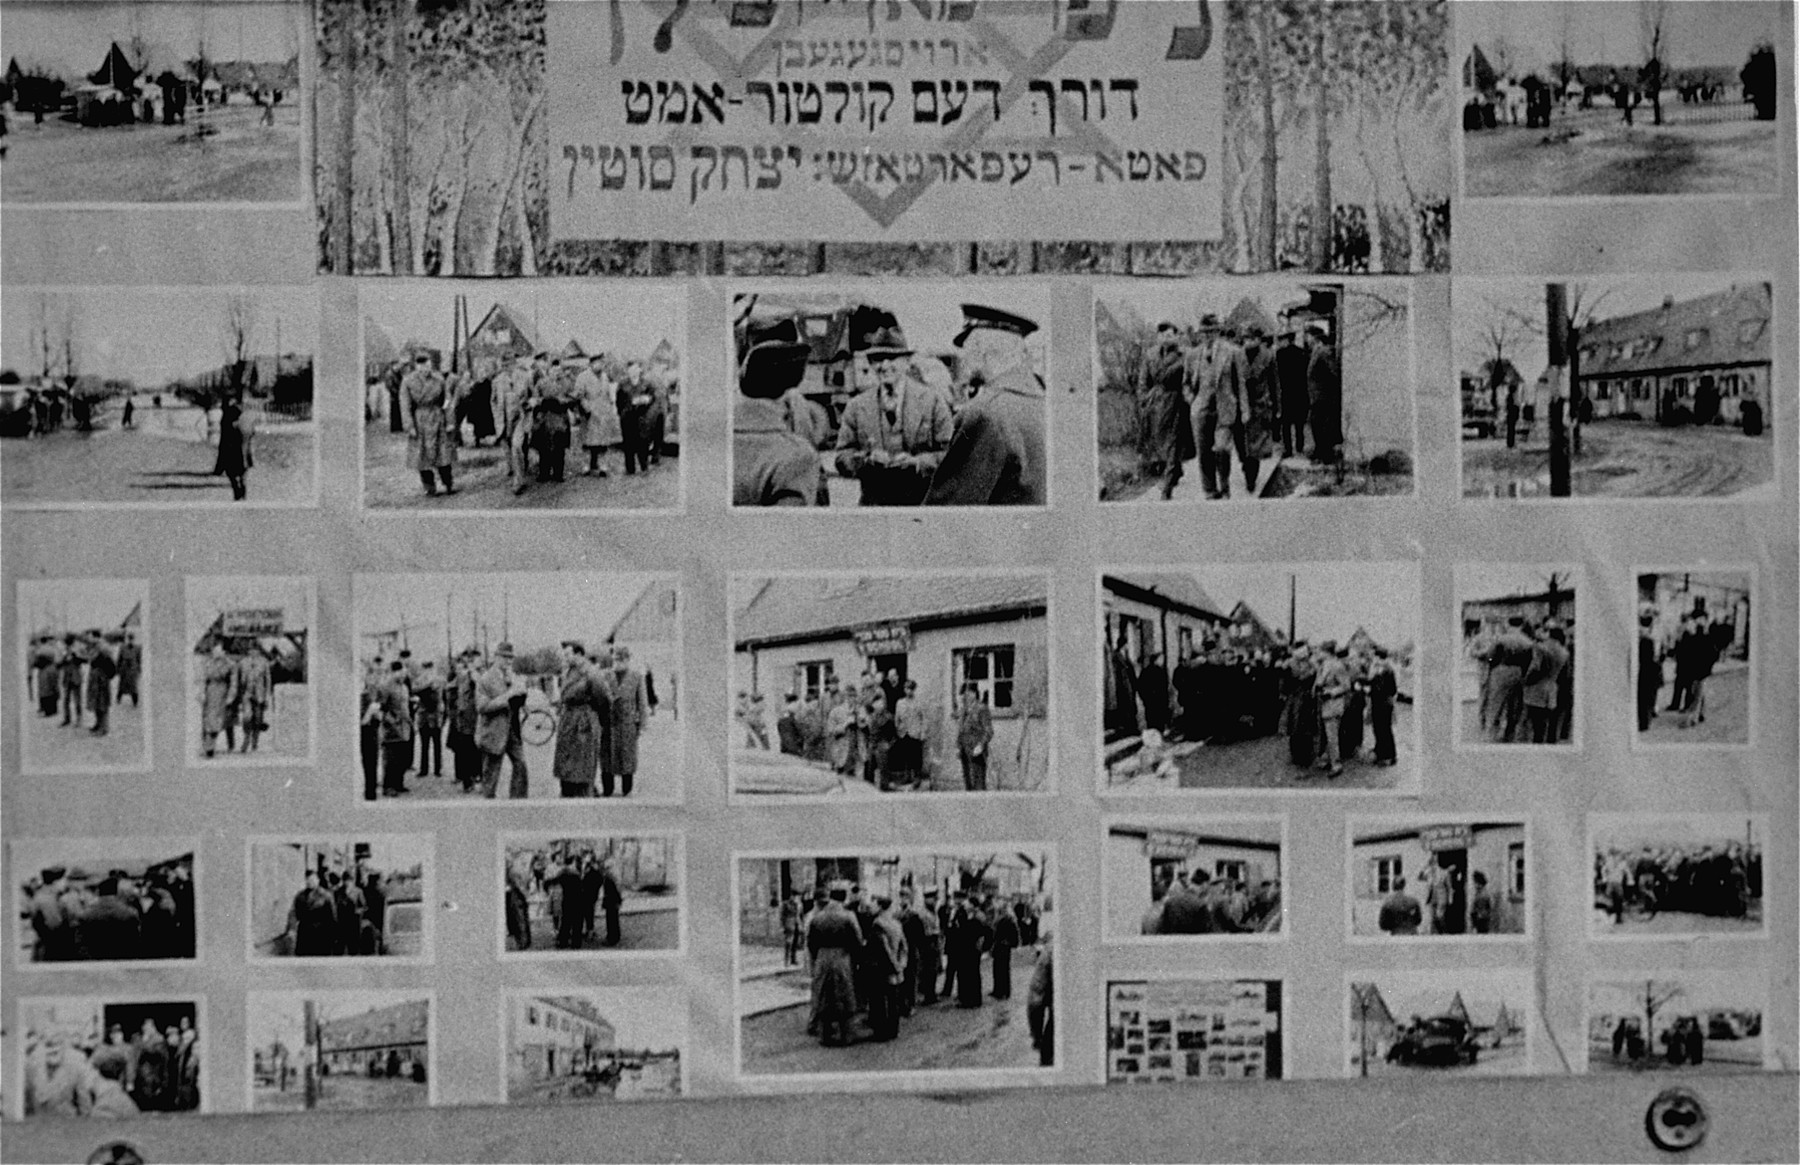 Montage  of photographs depicting life in the Neu Freimann DP camp sponsored by the Neu Freimann cultural bureau and arranged by Jitzhak Sutlin.